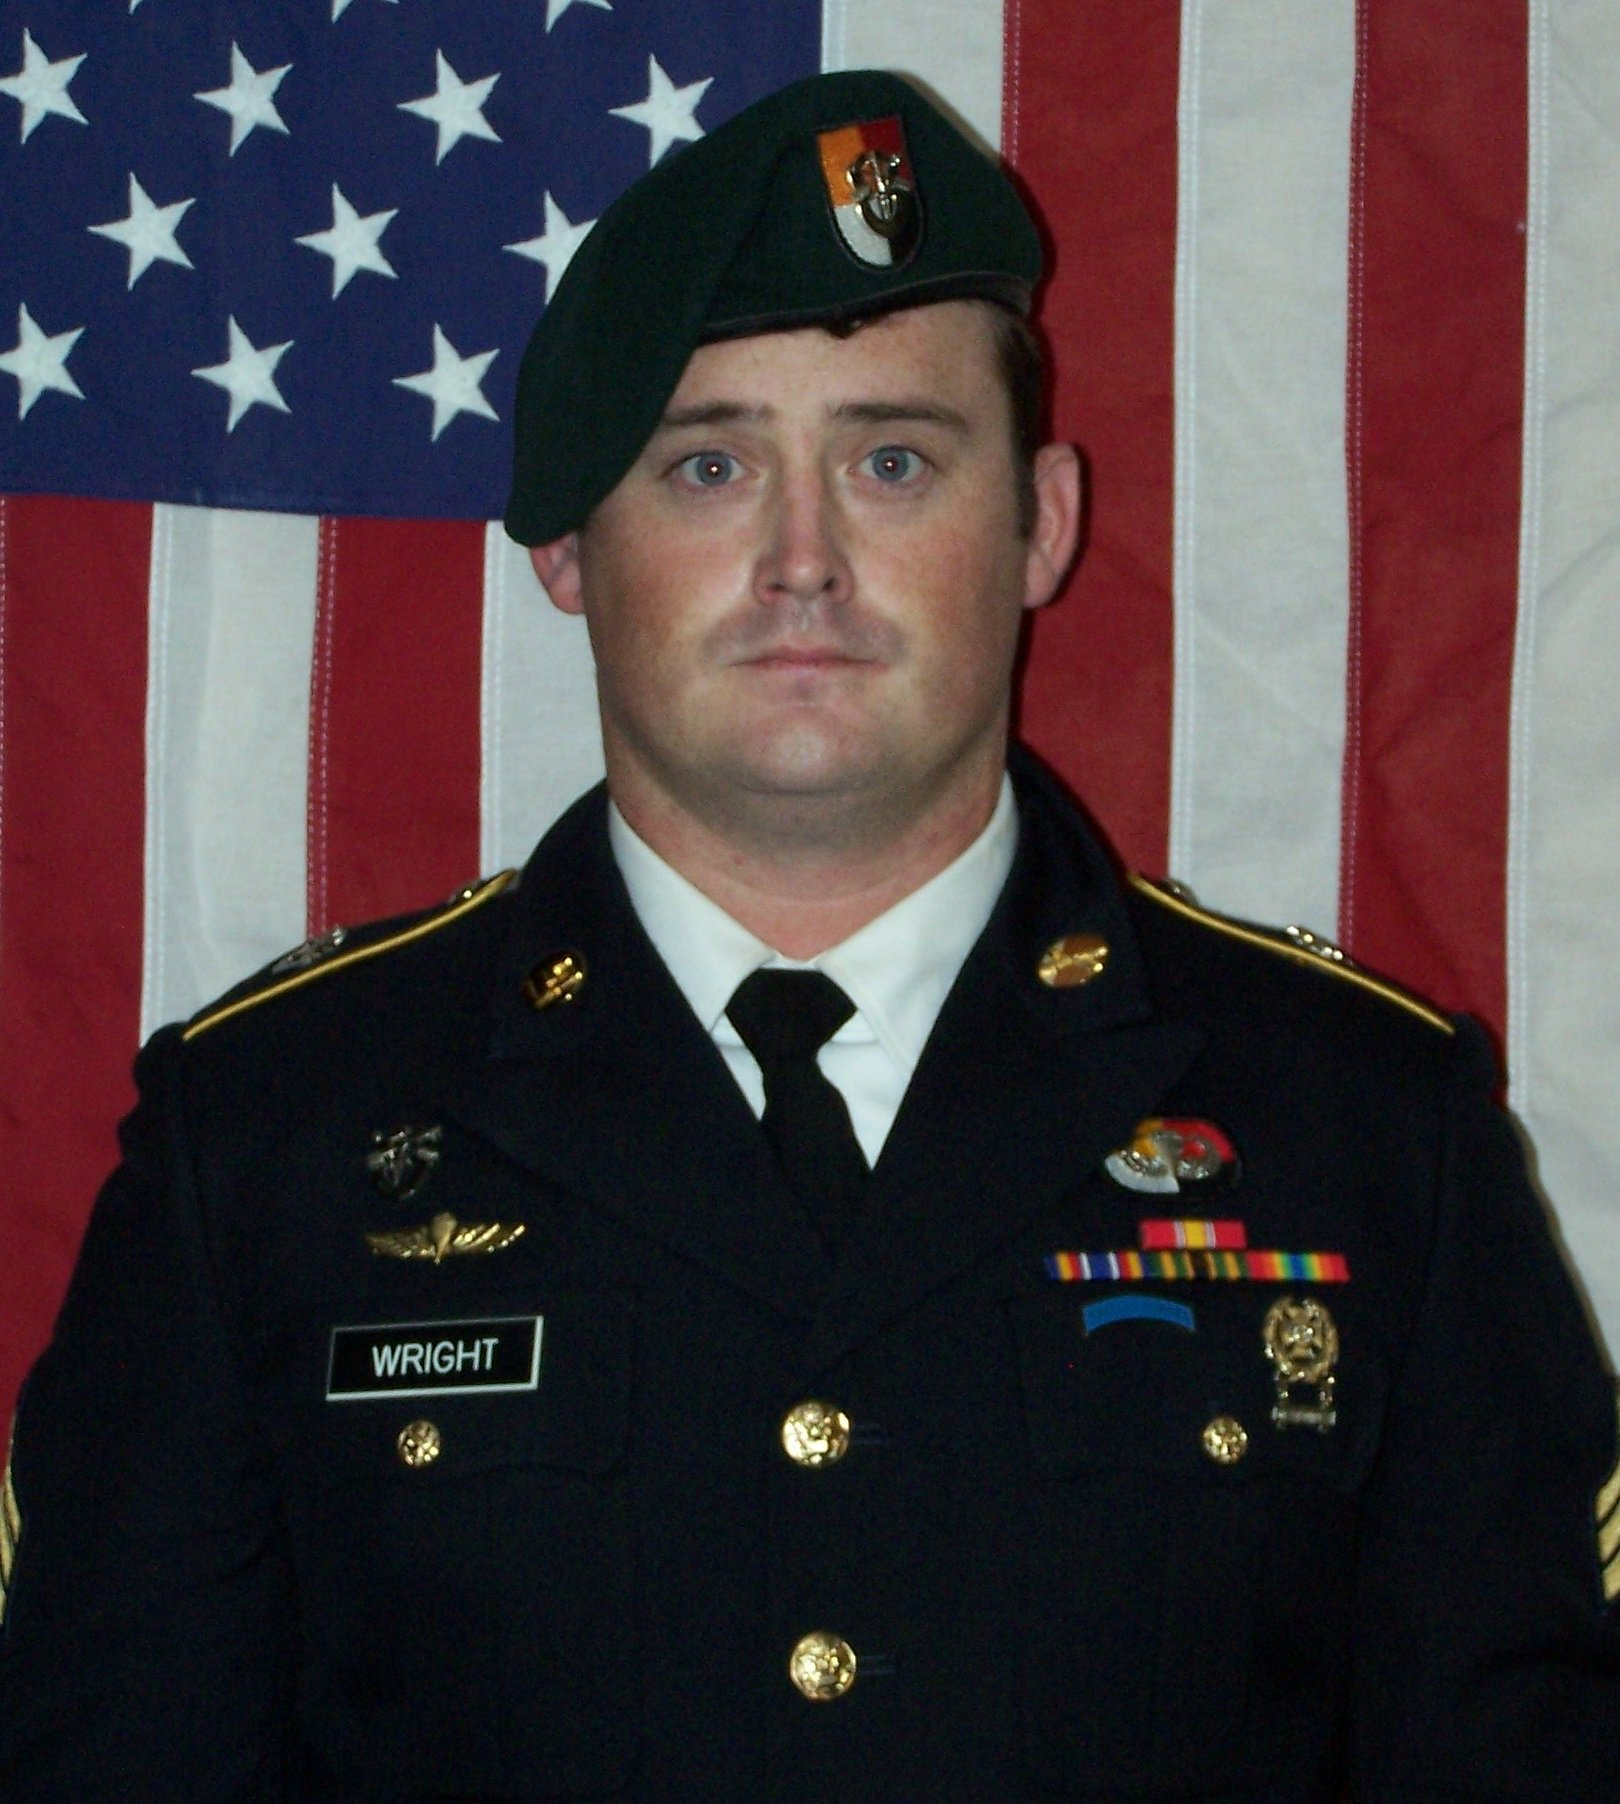 U.S. Army Sergeant Dustin Wright, who was among four special forces soldiers killed in Niger, West Africa on Oct. 4, 2017, poses in a handout photo released October 18, 2017.